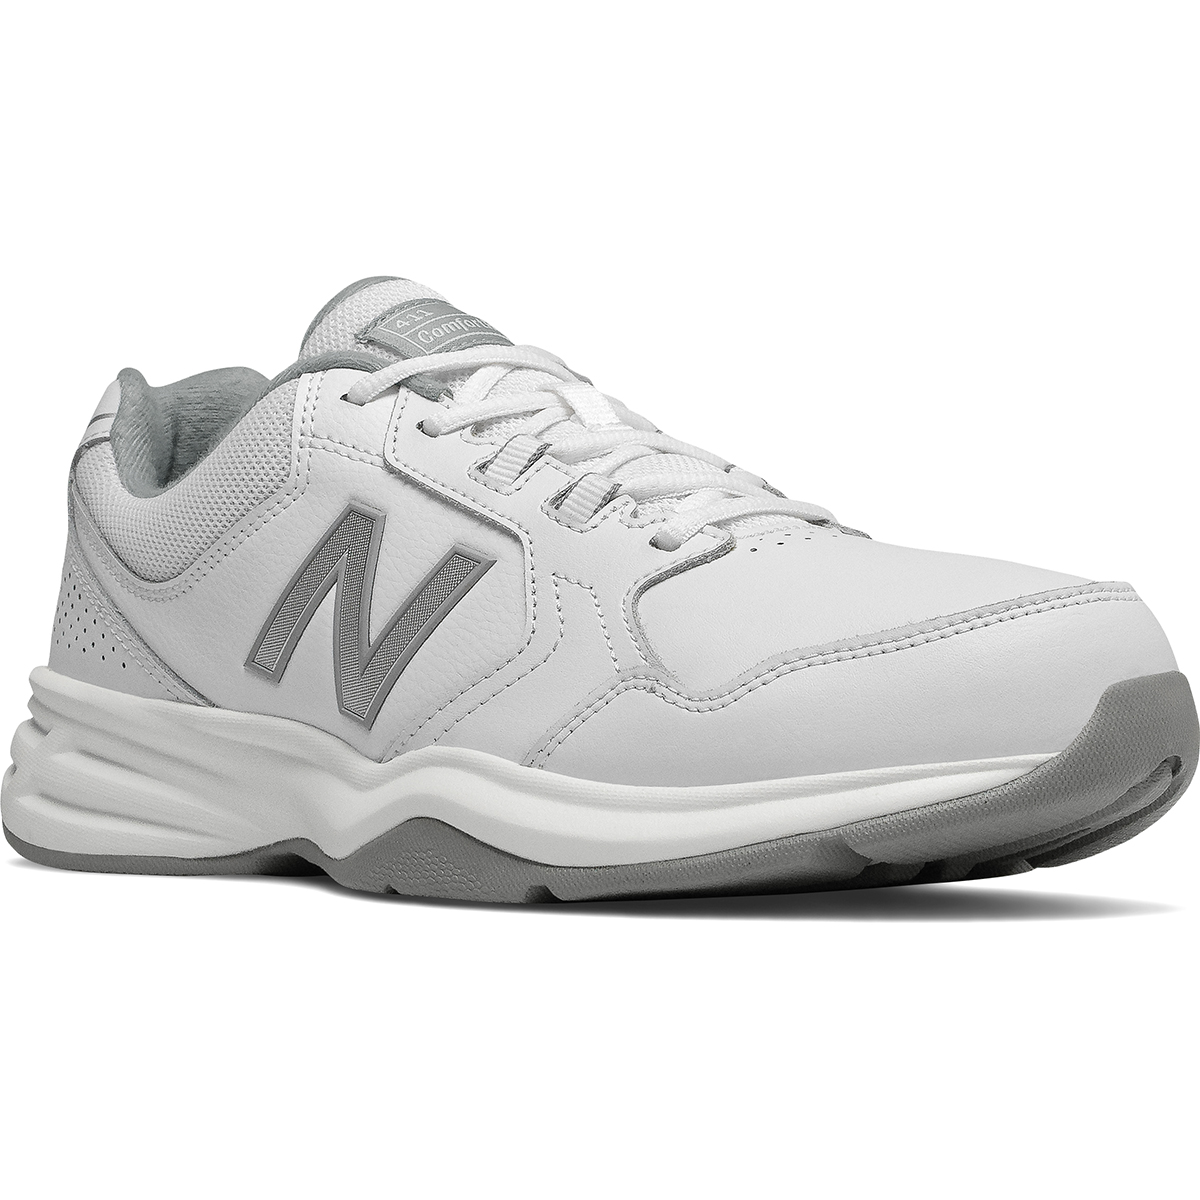 New Balance Men's 411 Walking Shoes, Wide - White, 9.5